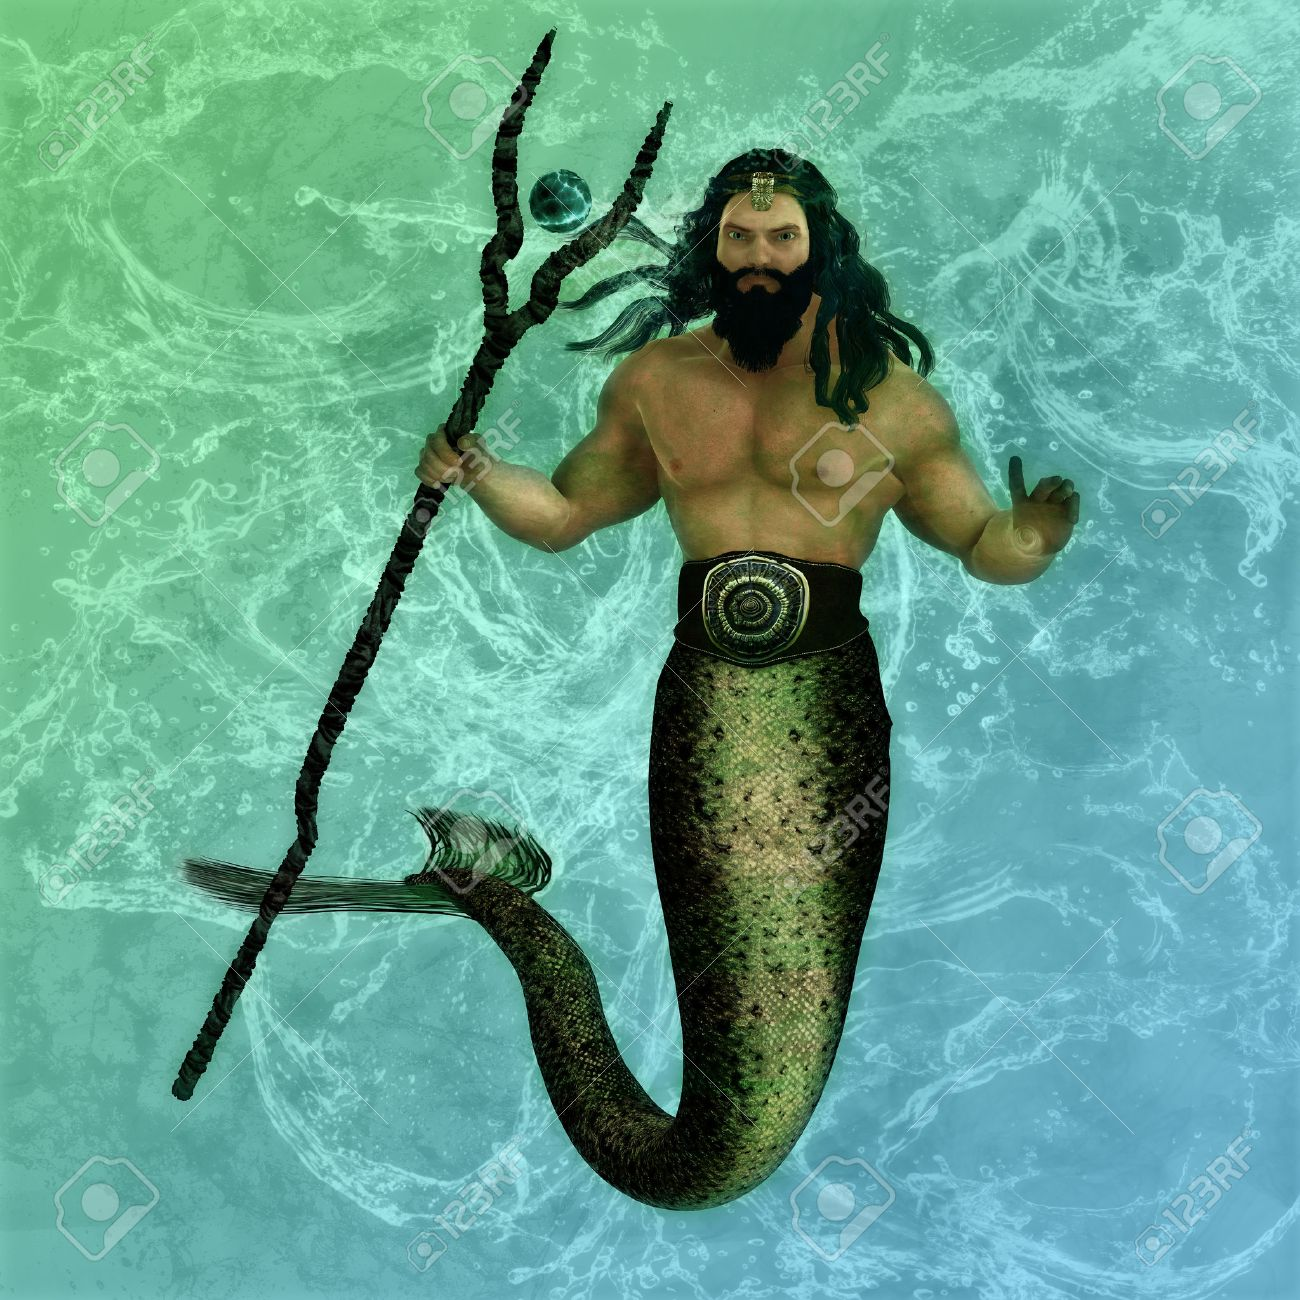 Poseidon Or Neptune Is The Greek God Of The Sea, Water ...